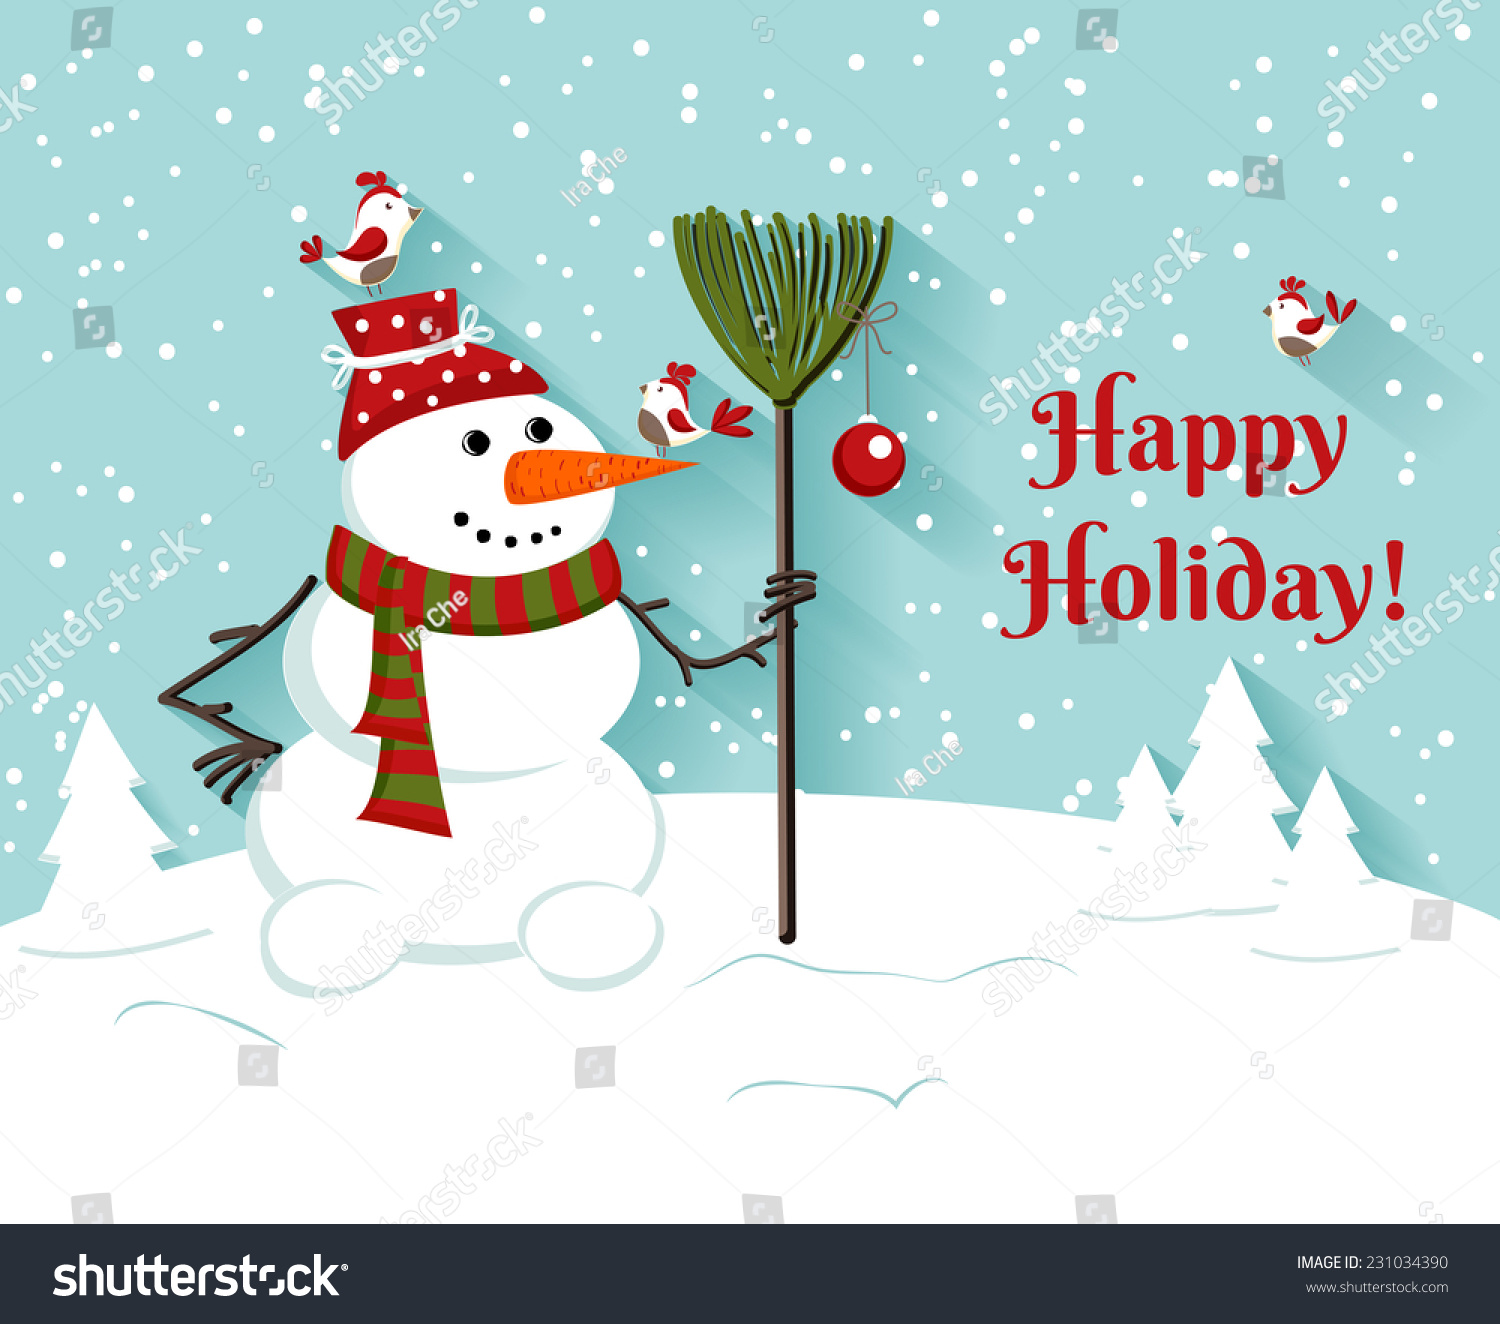 Happy Holiday Snowman Illustrationgreeting Card Vector